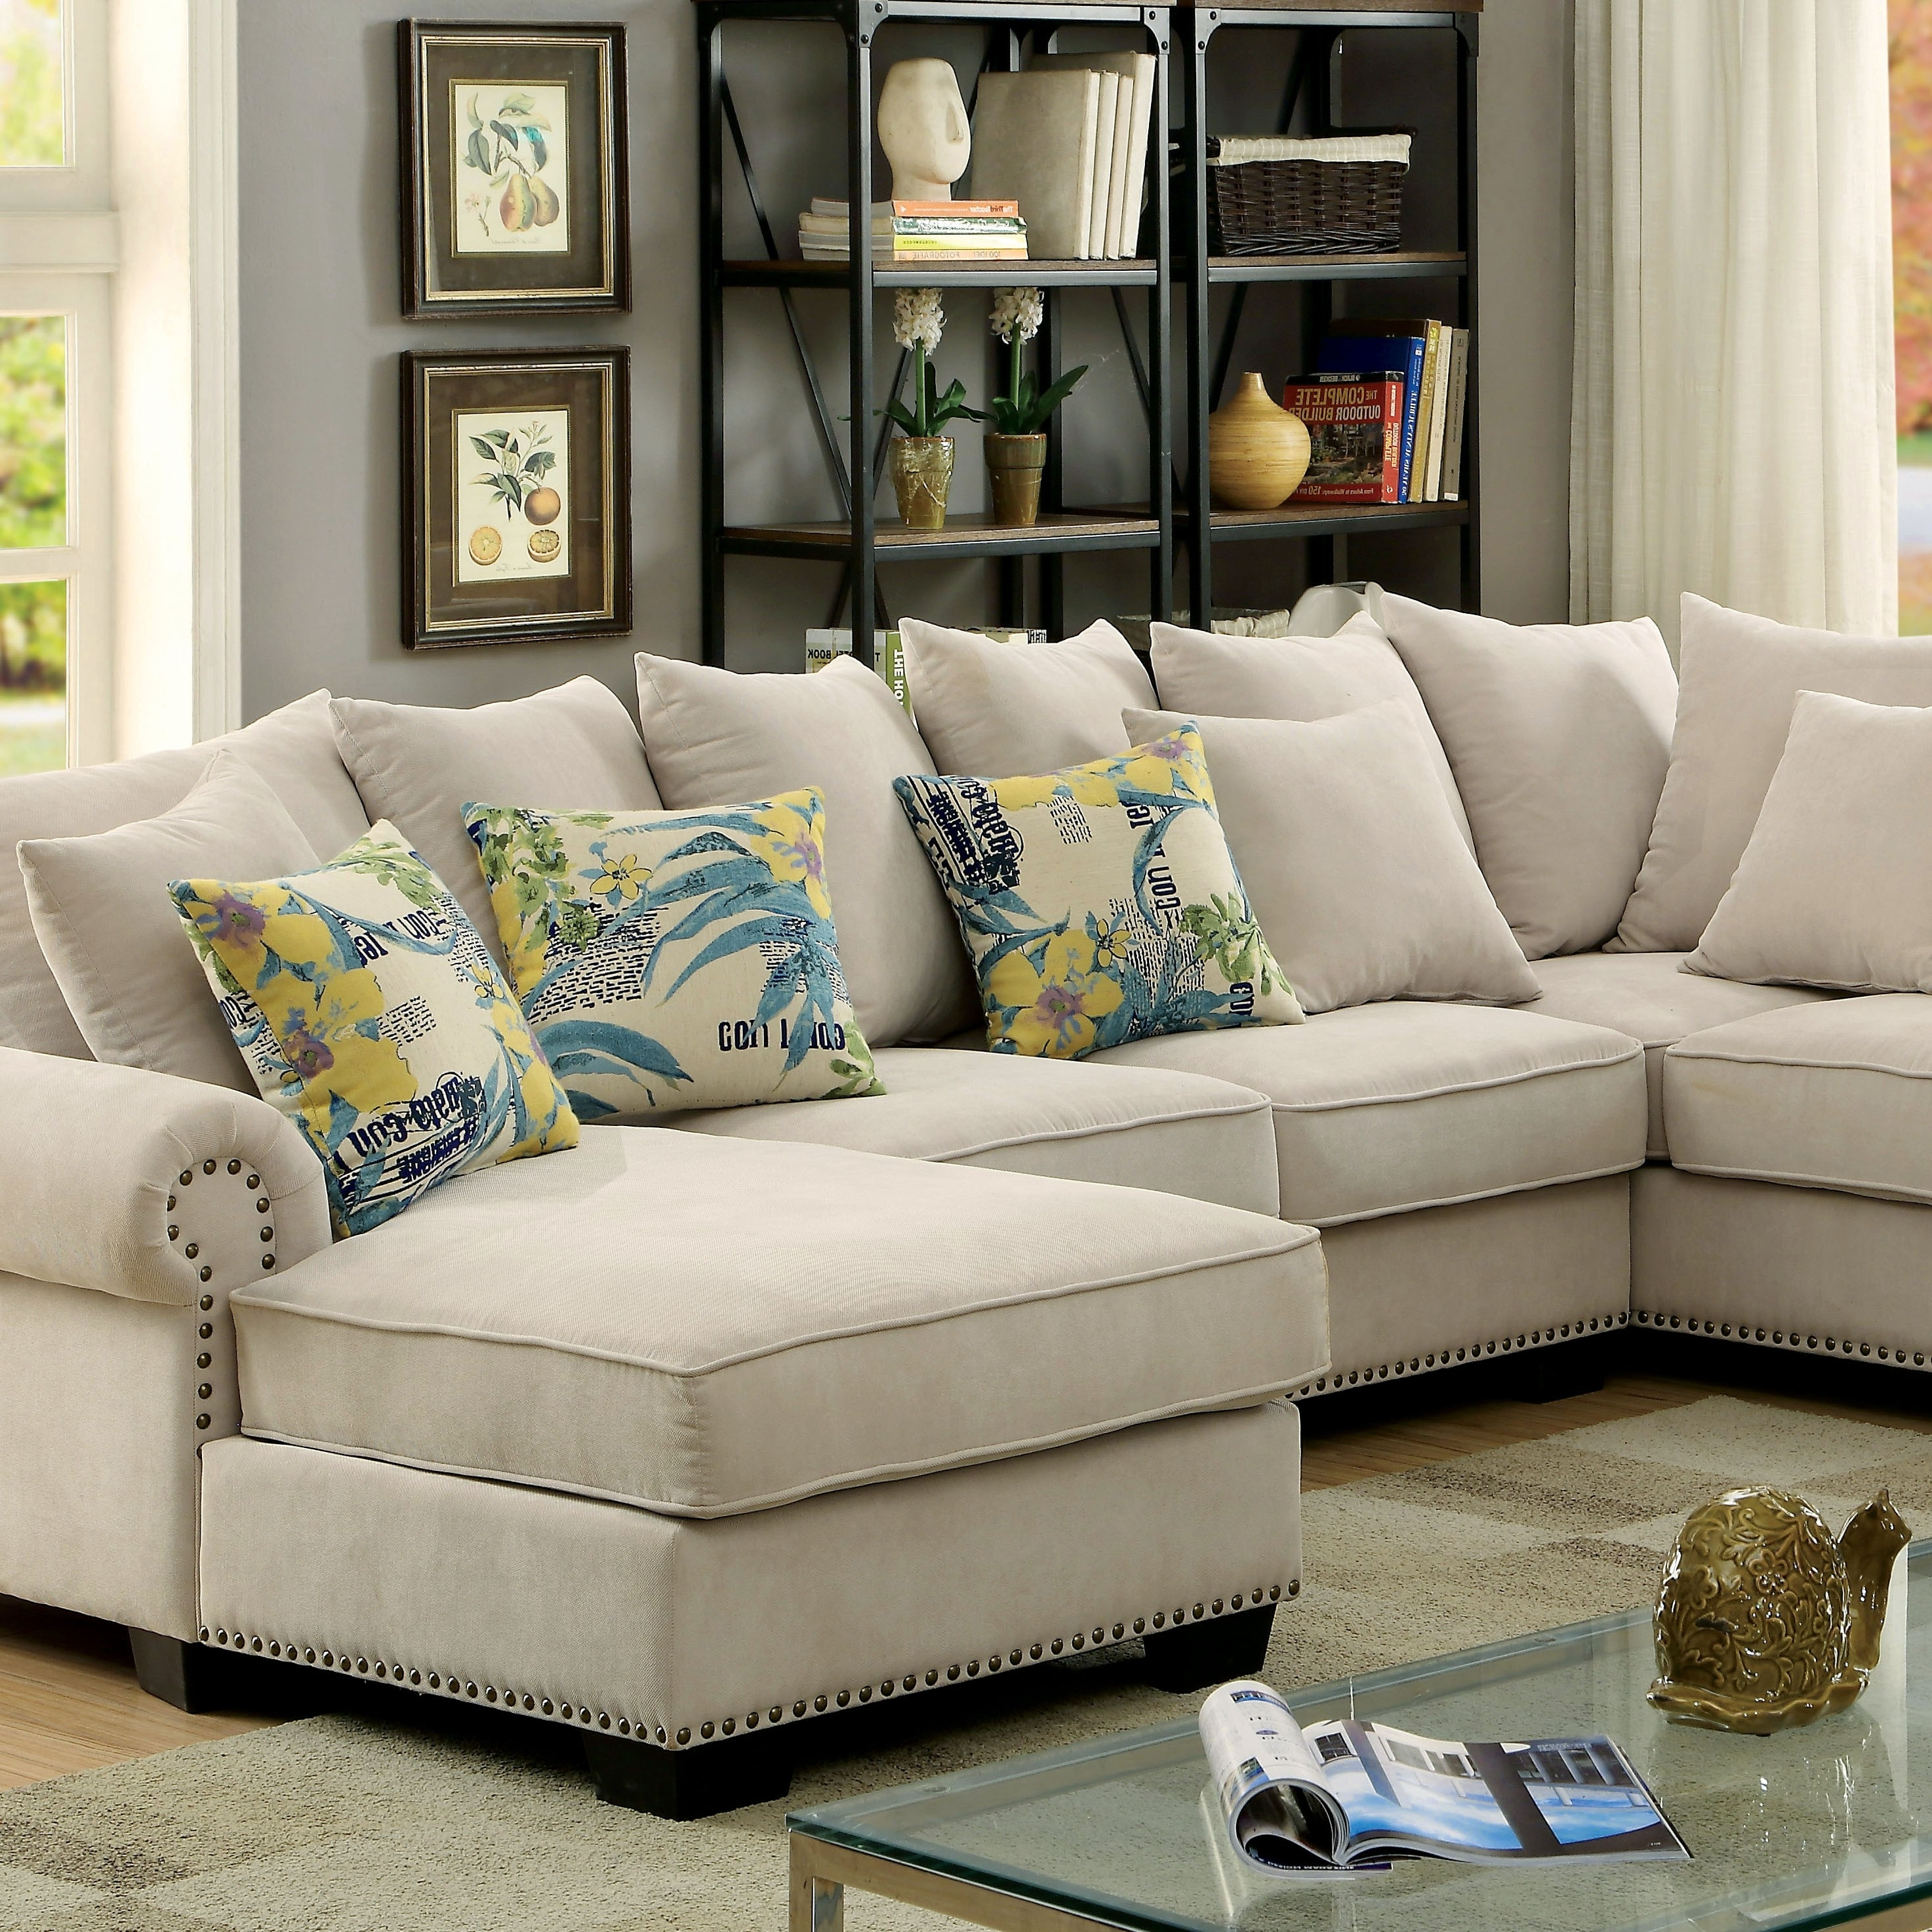 Skyler Transitional Ivory Fabric Sectional Sofa Couch – Shop For With Most Recent Fabric Sectional Sofas (View 5 of 15)